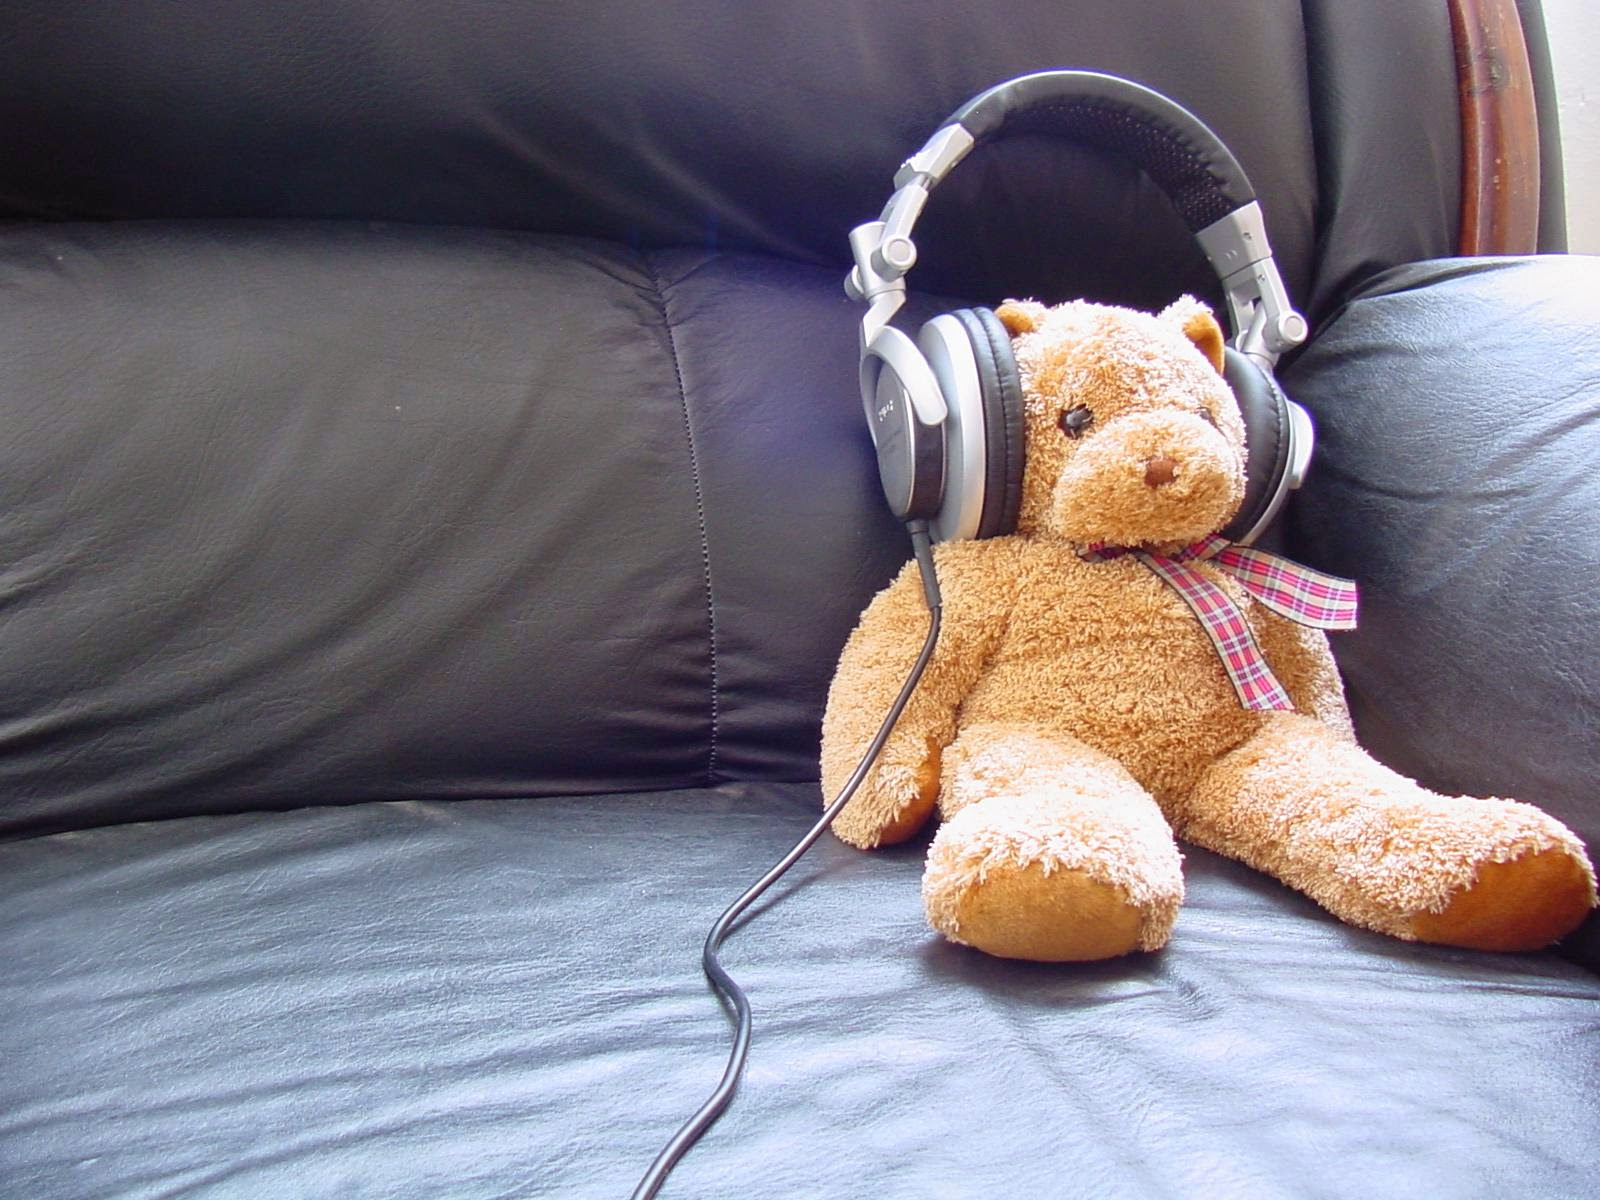 Teddy-relaxing-in-couch-headphone-music-1600x1200.jpg